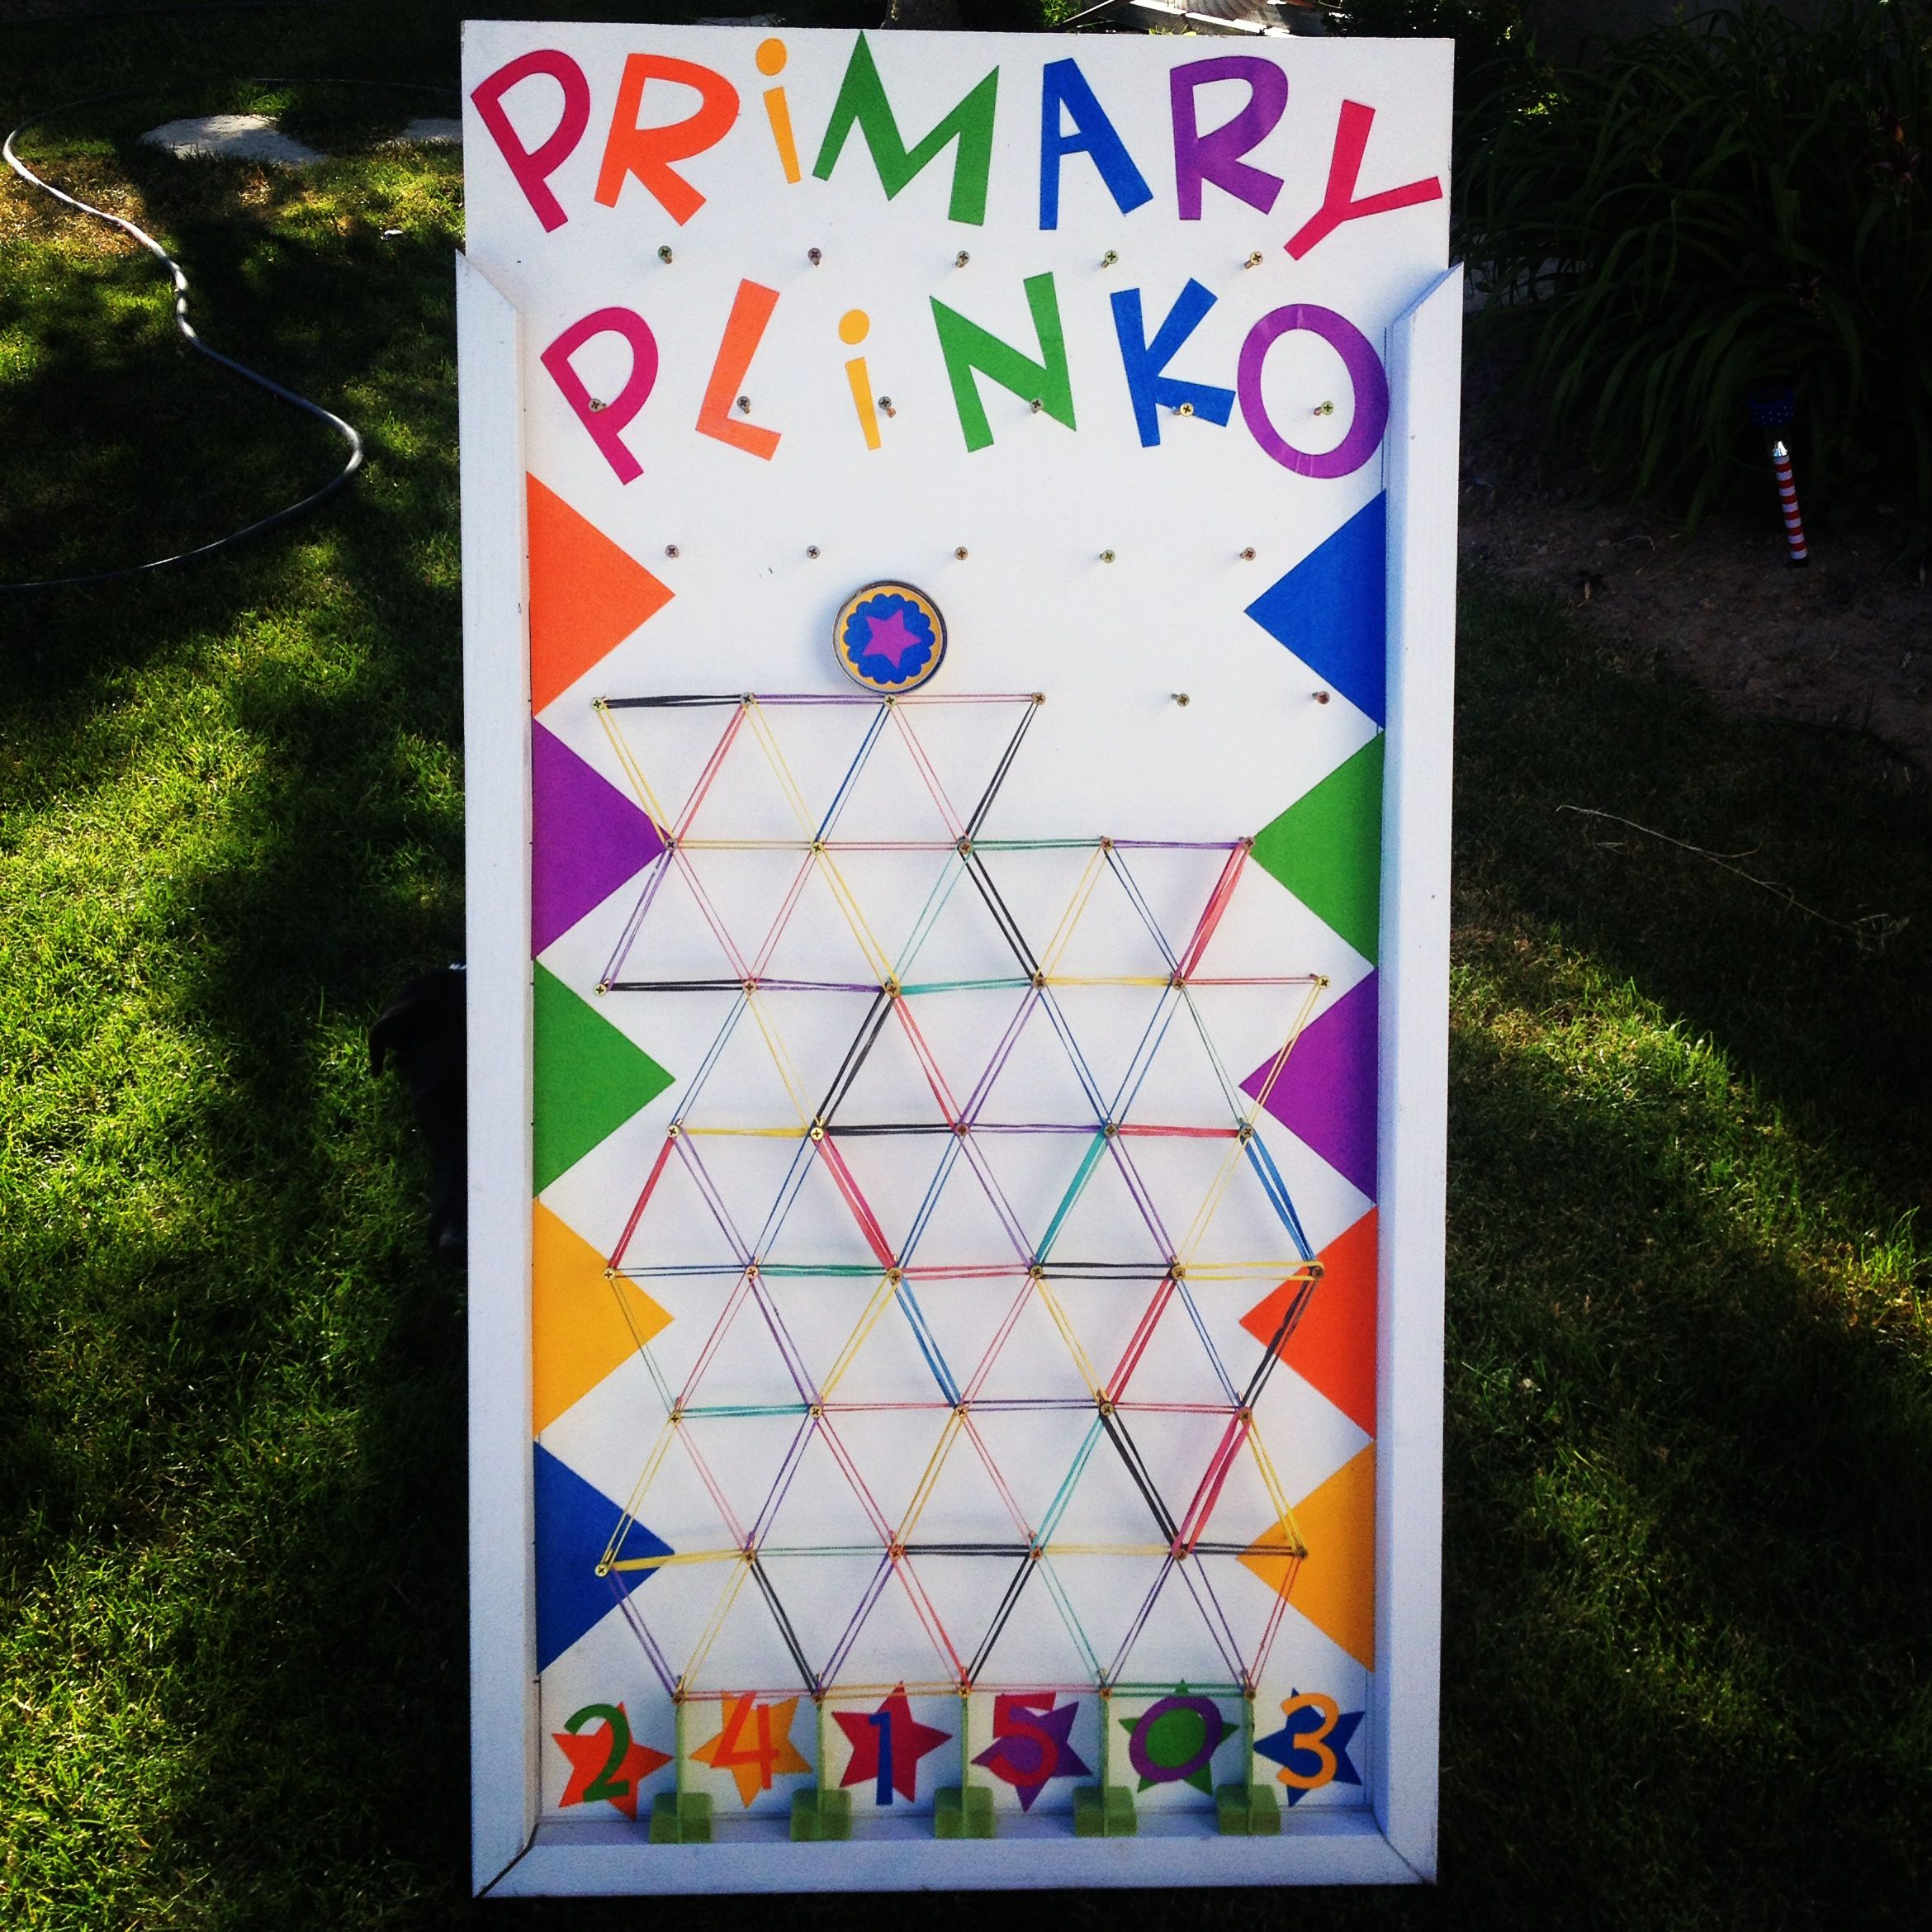 Diy plinko game 4x2 this one is for music time in primary diy plinko game 4x2 this one is for music time in primary solutioingenieria Choice Image